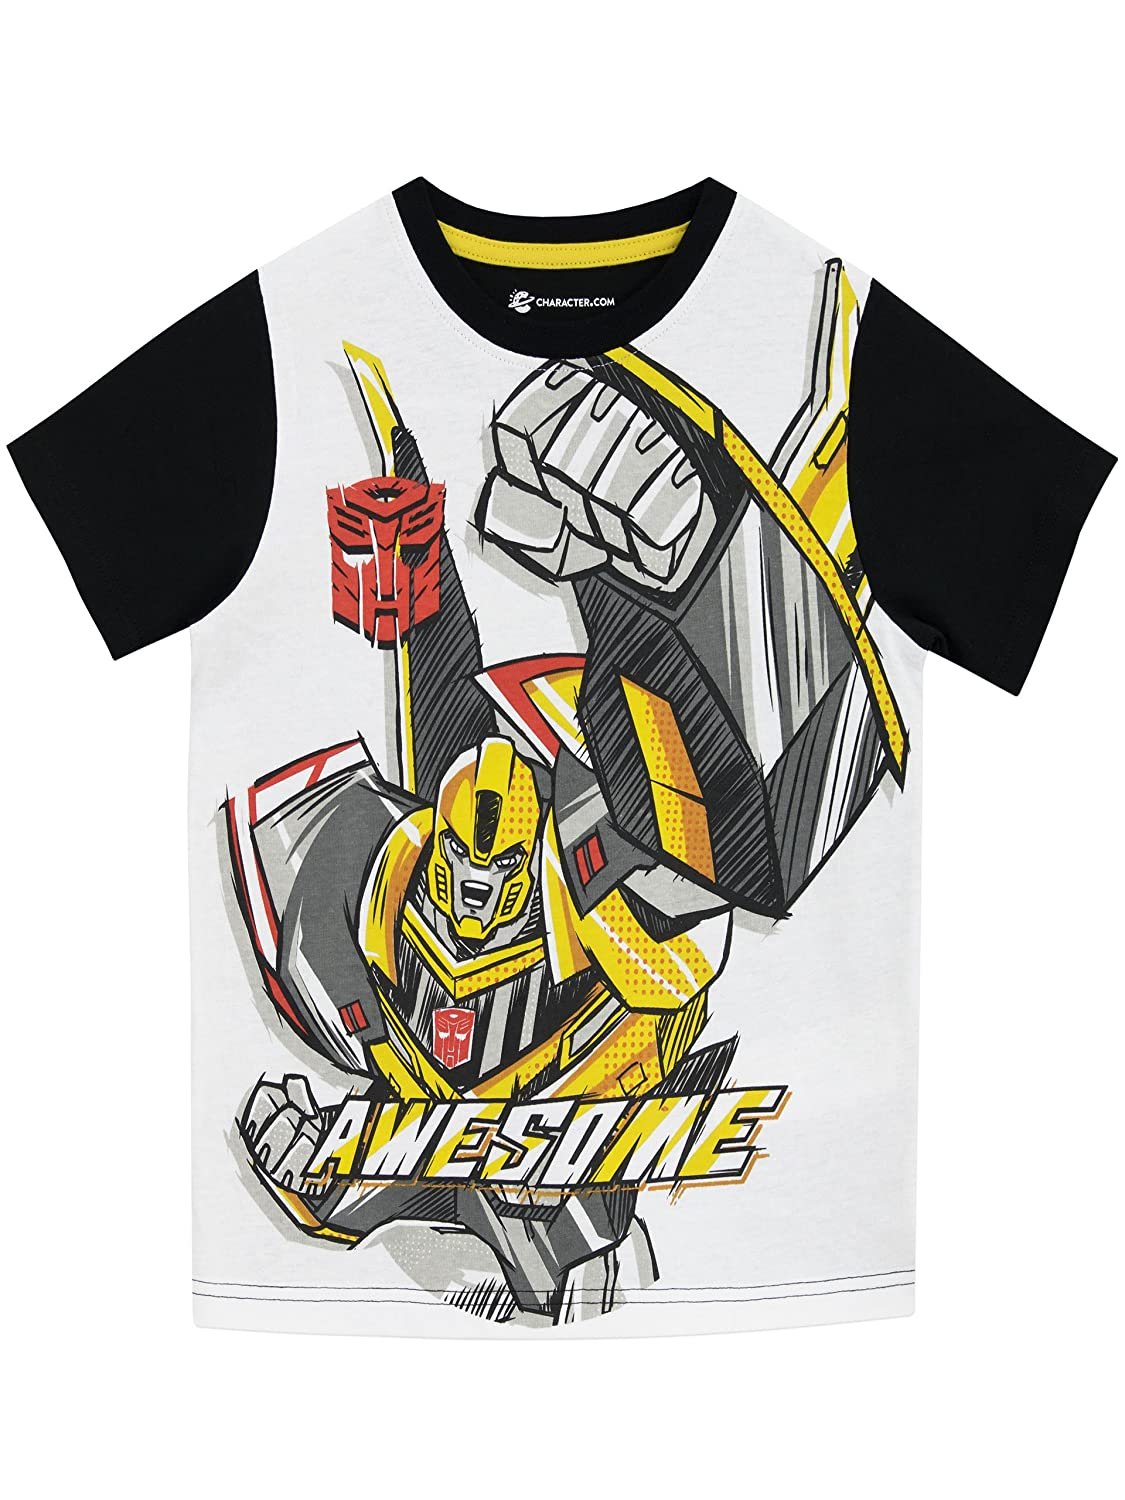 Transformers Boys T-Shirt Ages 3 to 10 Years